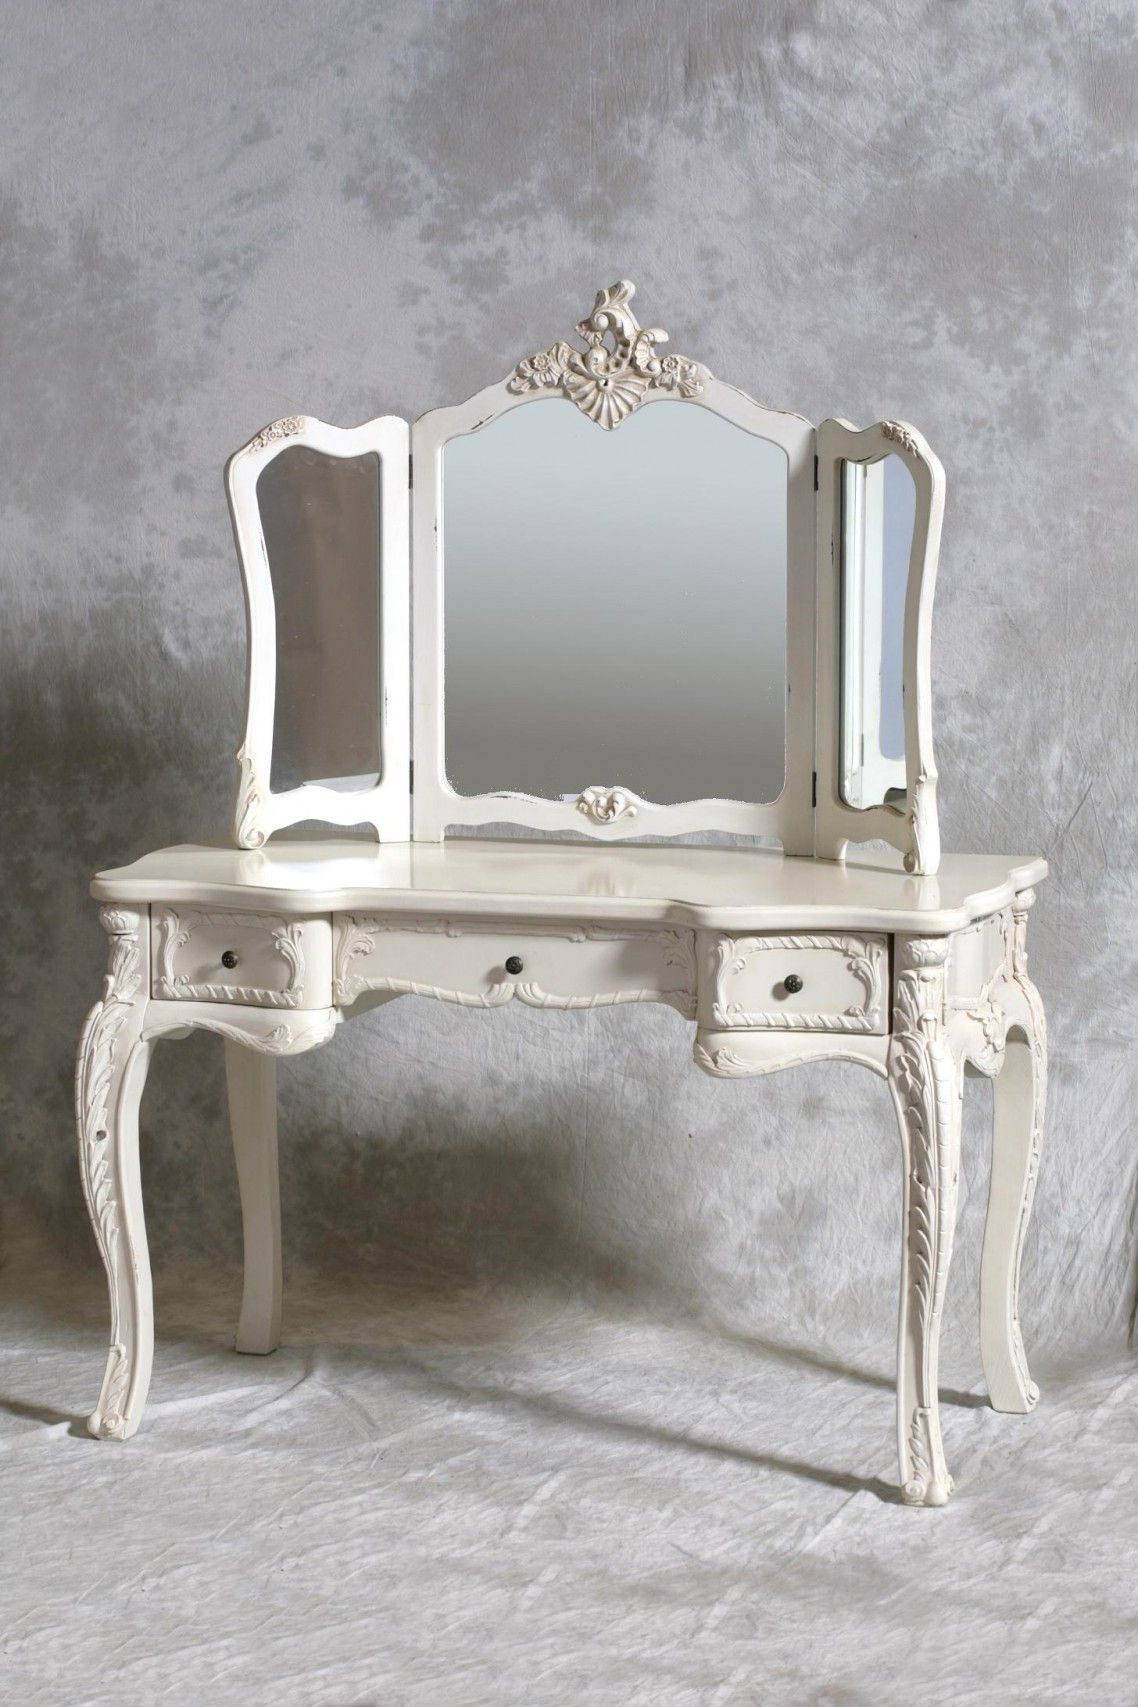 044f0add71 Wrought Iron Vanity Table Decoration Fine Looking Antique Dressing Table  With Cool Three Furniture Interior Mirror White Wooden Frames And Drawers  As Well ...